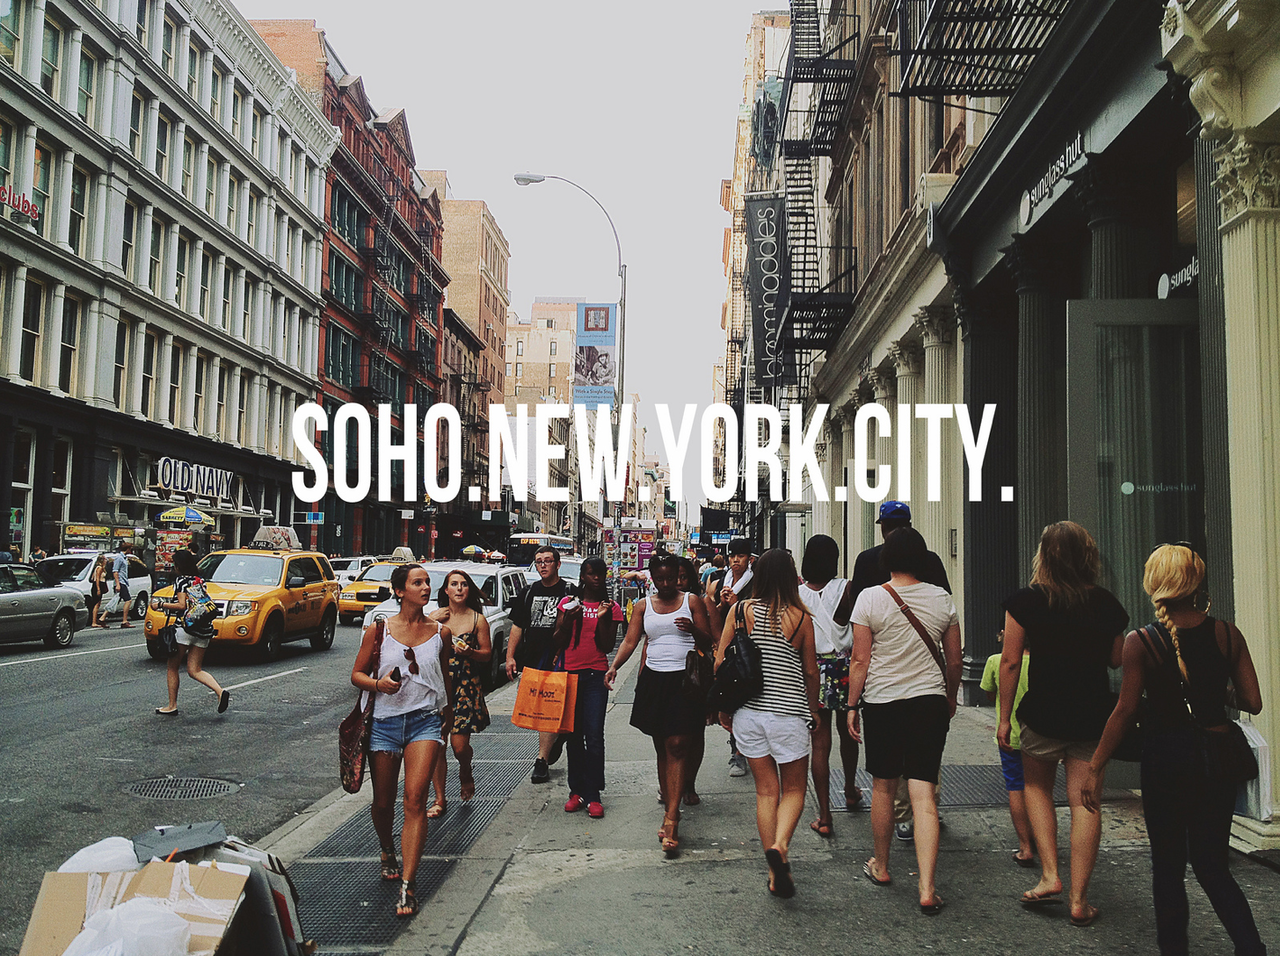 Clothing stores in soho new york